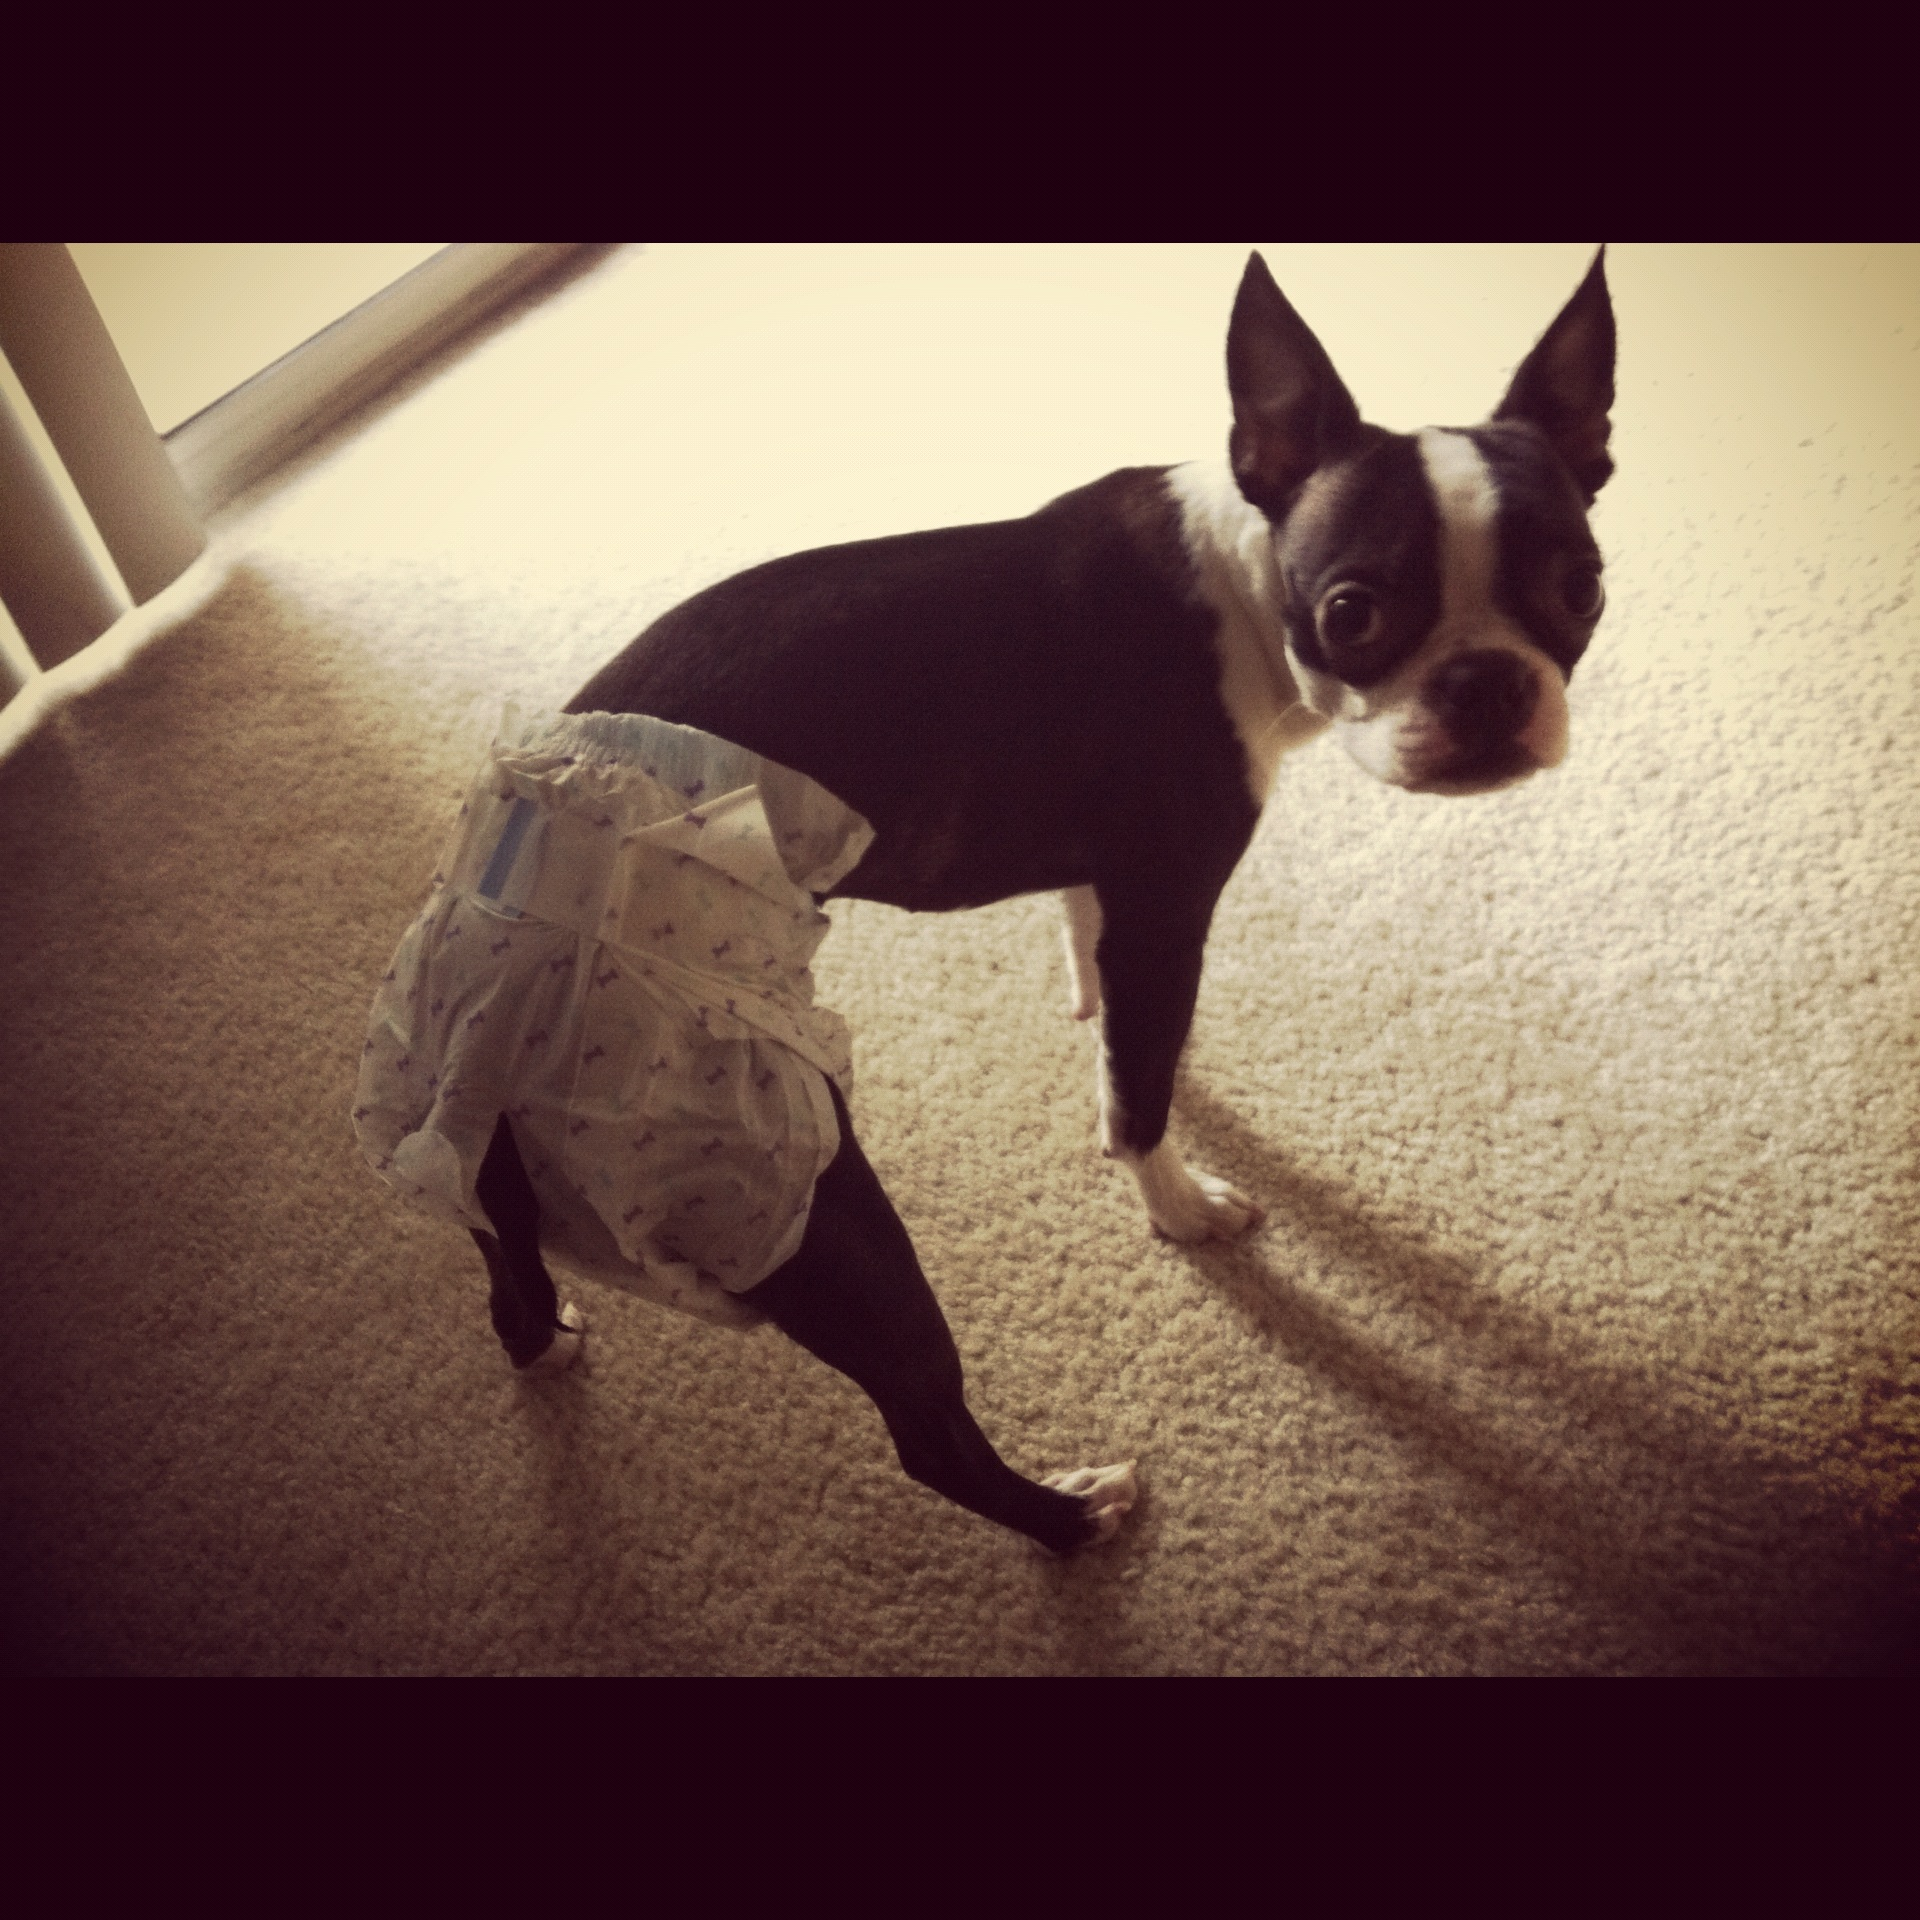 Odeur/tâche d'urine: comment l'enlever? - Page 3 Boston-Terrier-Diaper